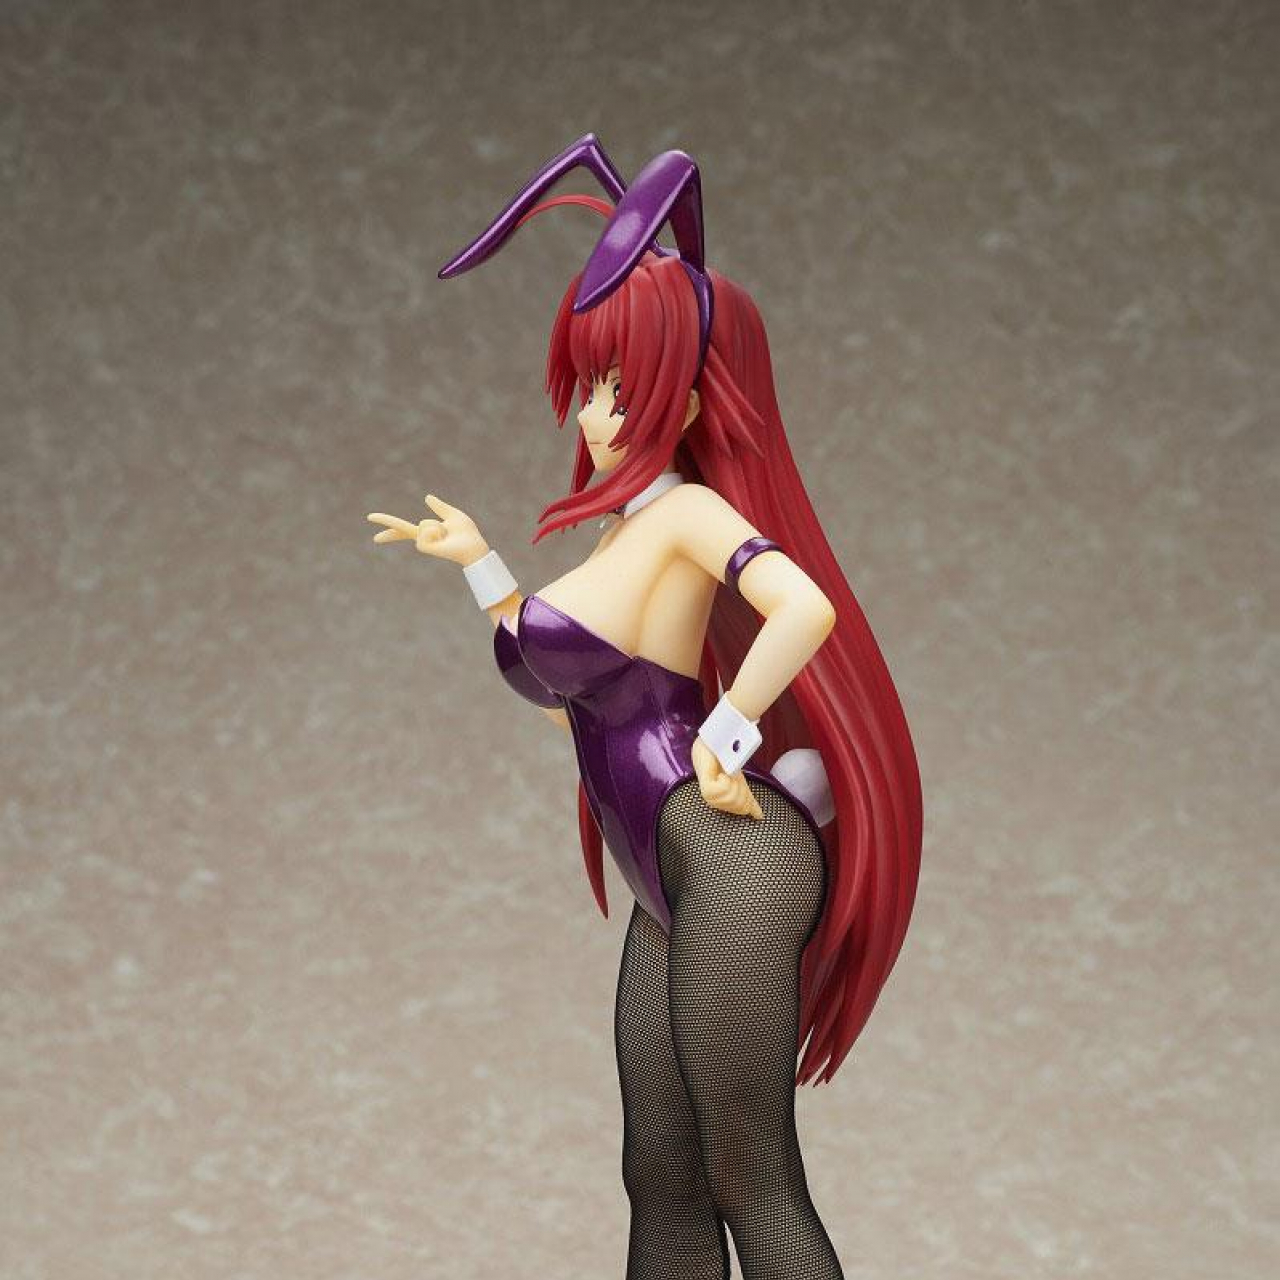 High School DxD BorN Statue 1/6 Rias Gremory Purple Bunny Ver. 30 cm